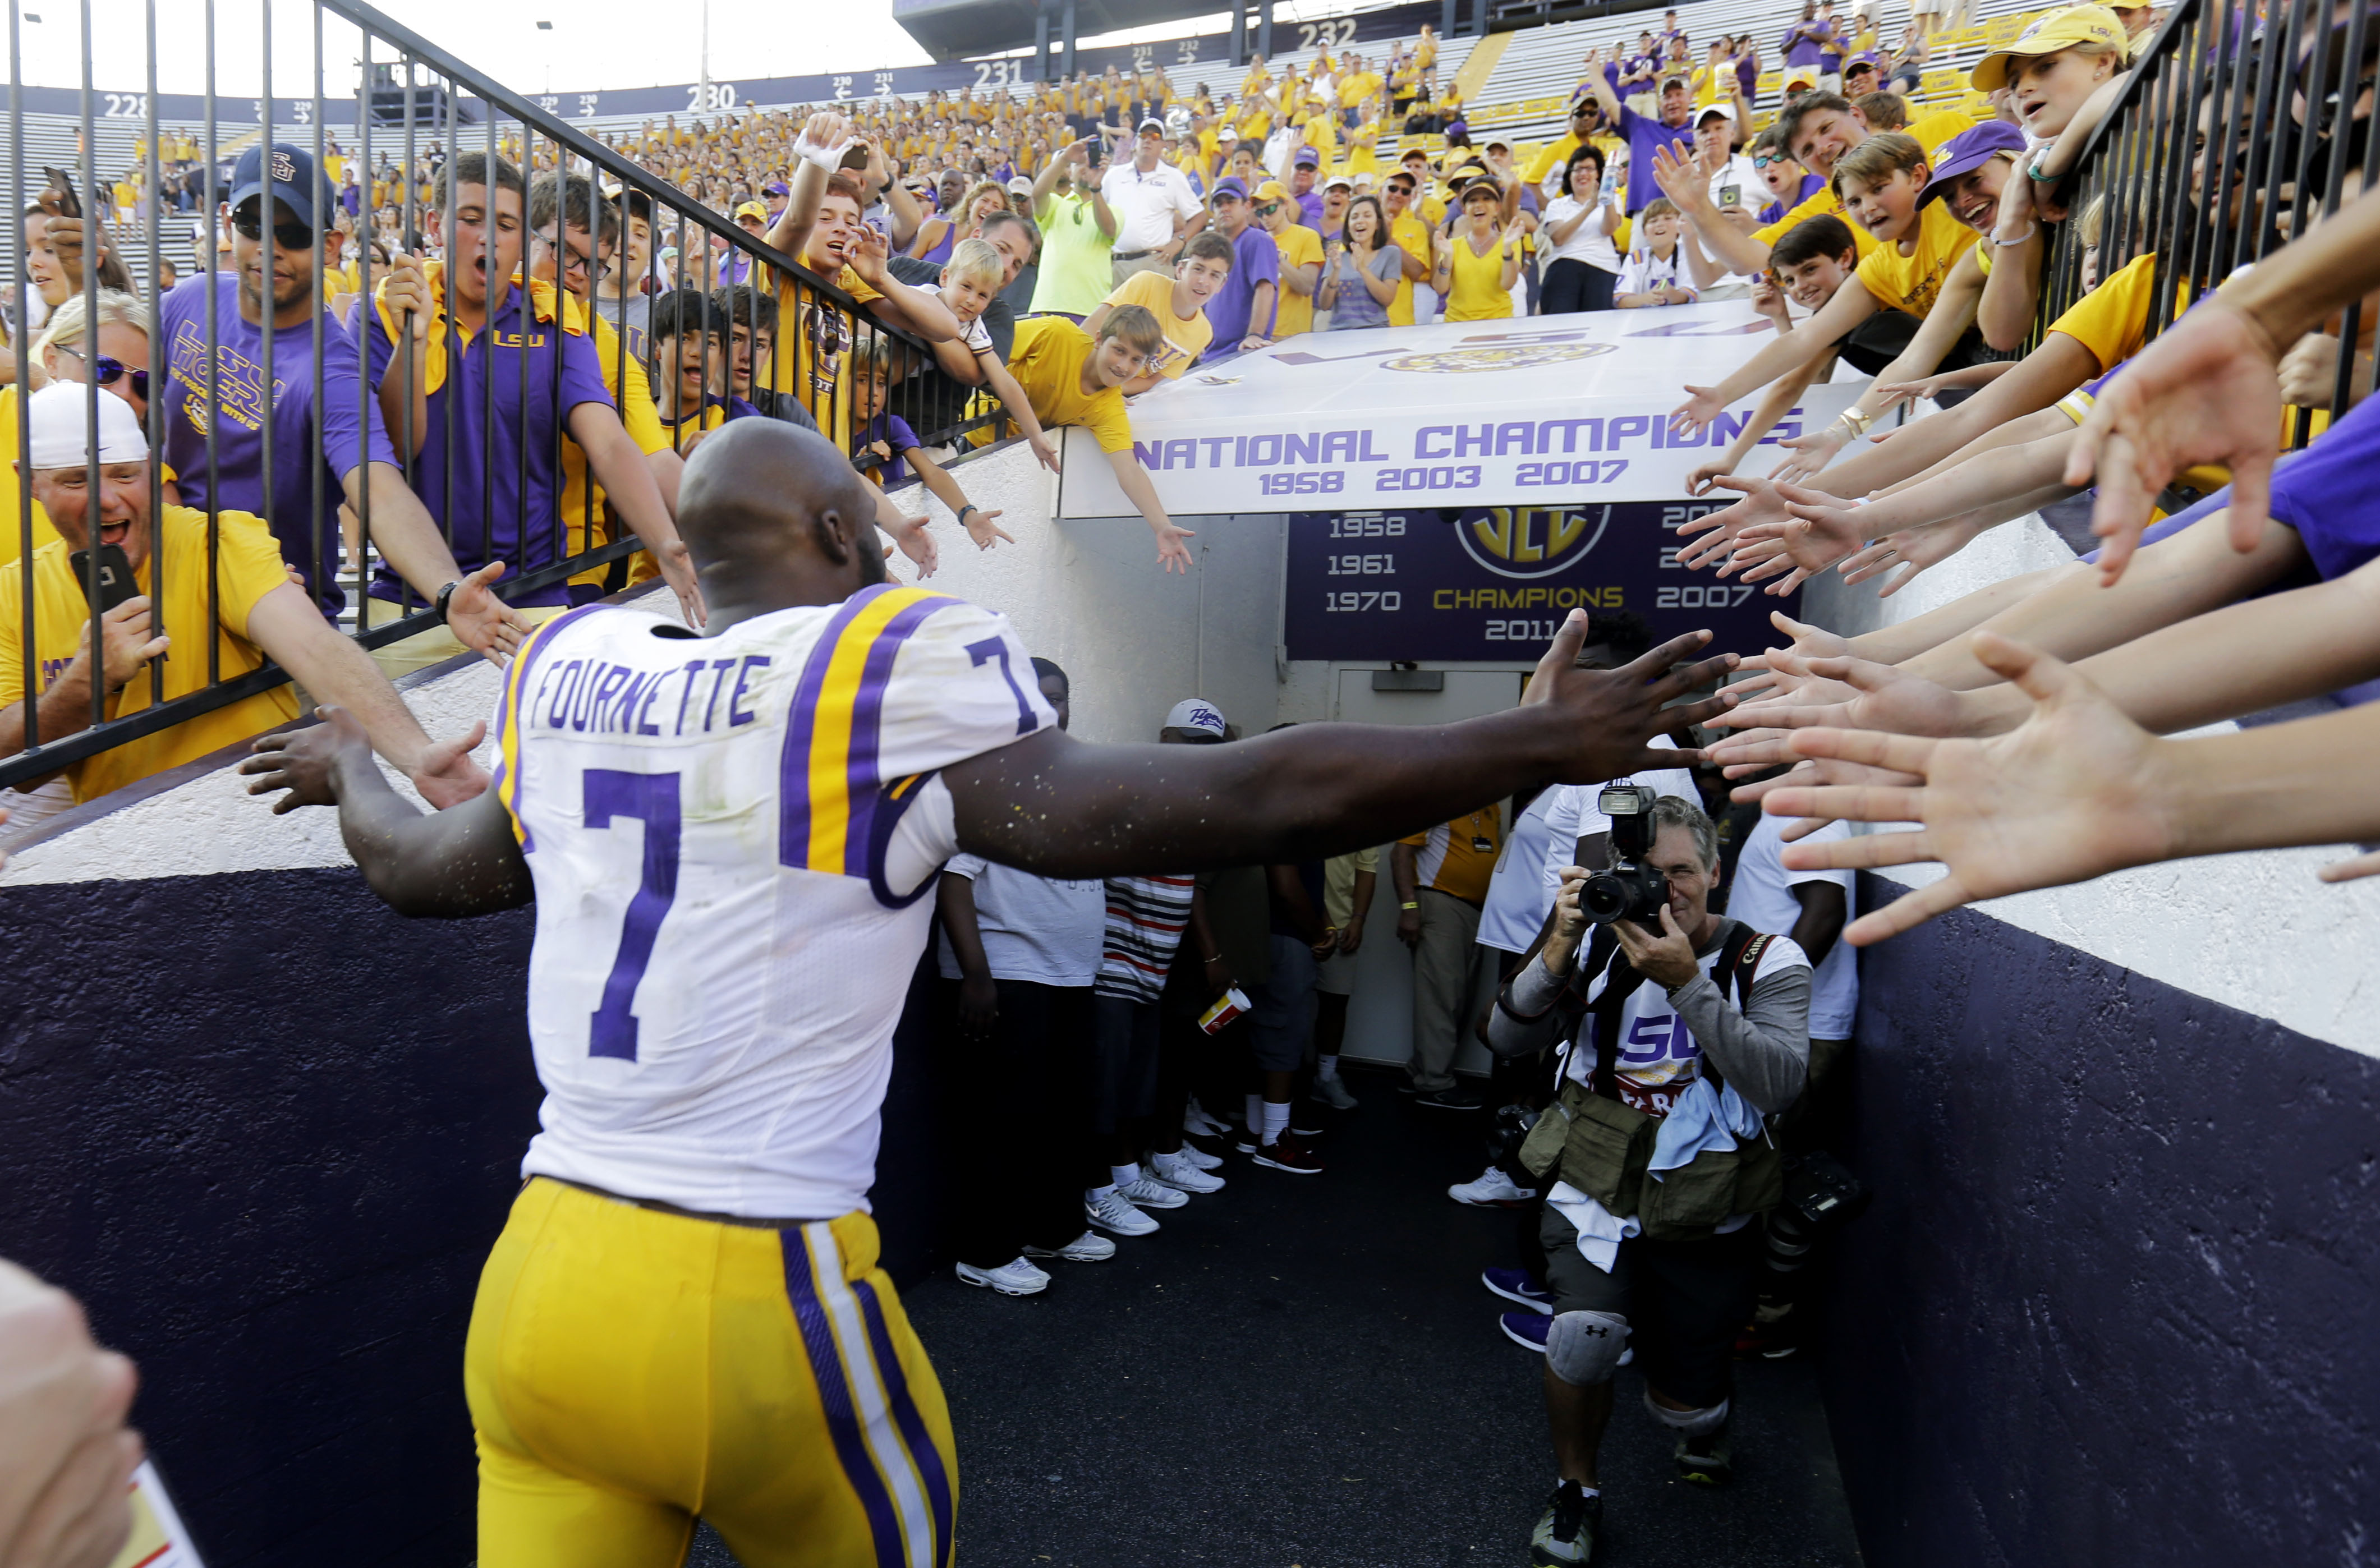 LSU running back Leonard Fournette (7) greets fans as he runs off the field after an NCAA college football game against Auburn in Baton Rouge, La., Saturday, Sept. 19, 2015. Fournette had 228 rushing yards, nine receiving yards, and three touchdowns as LS